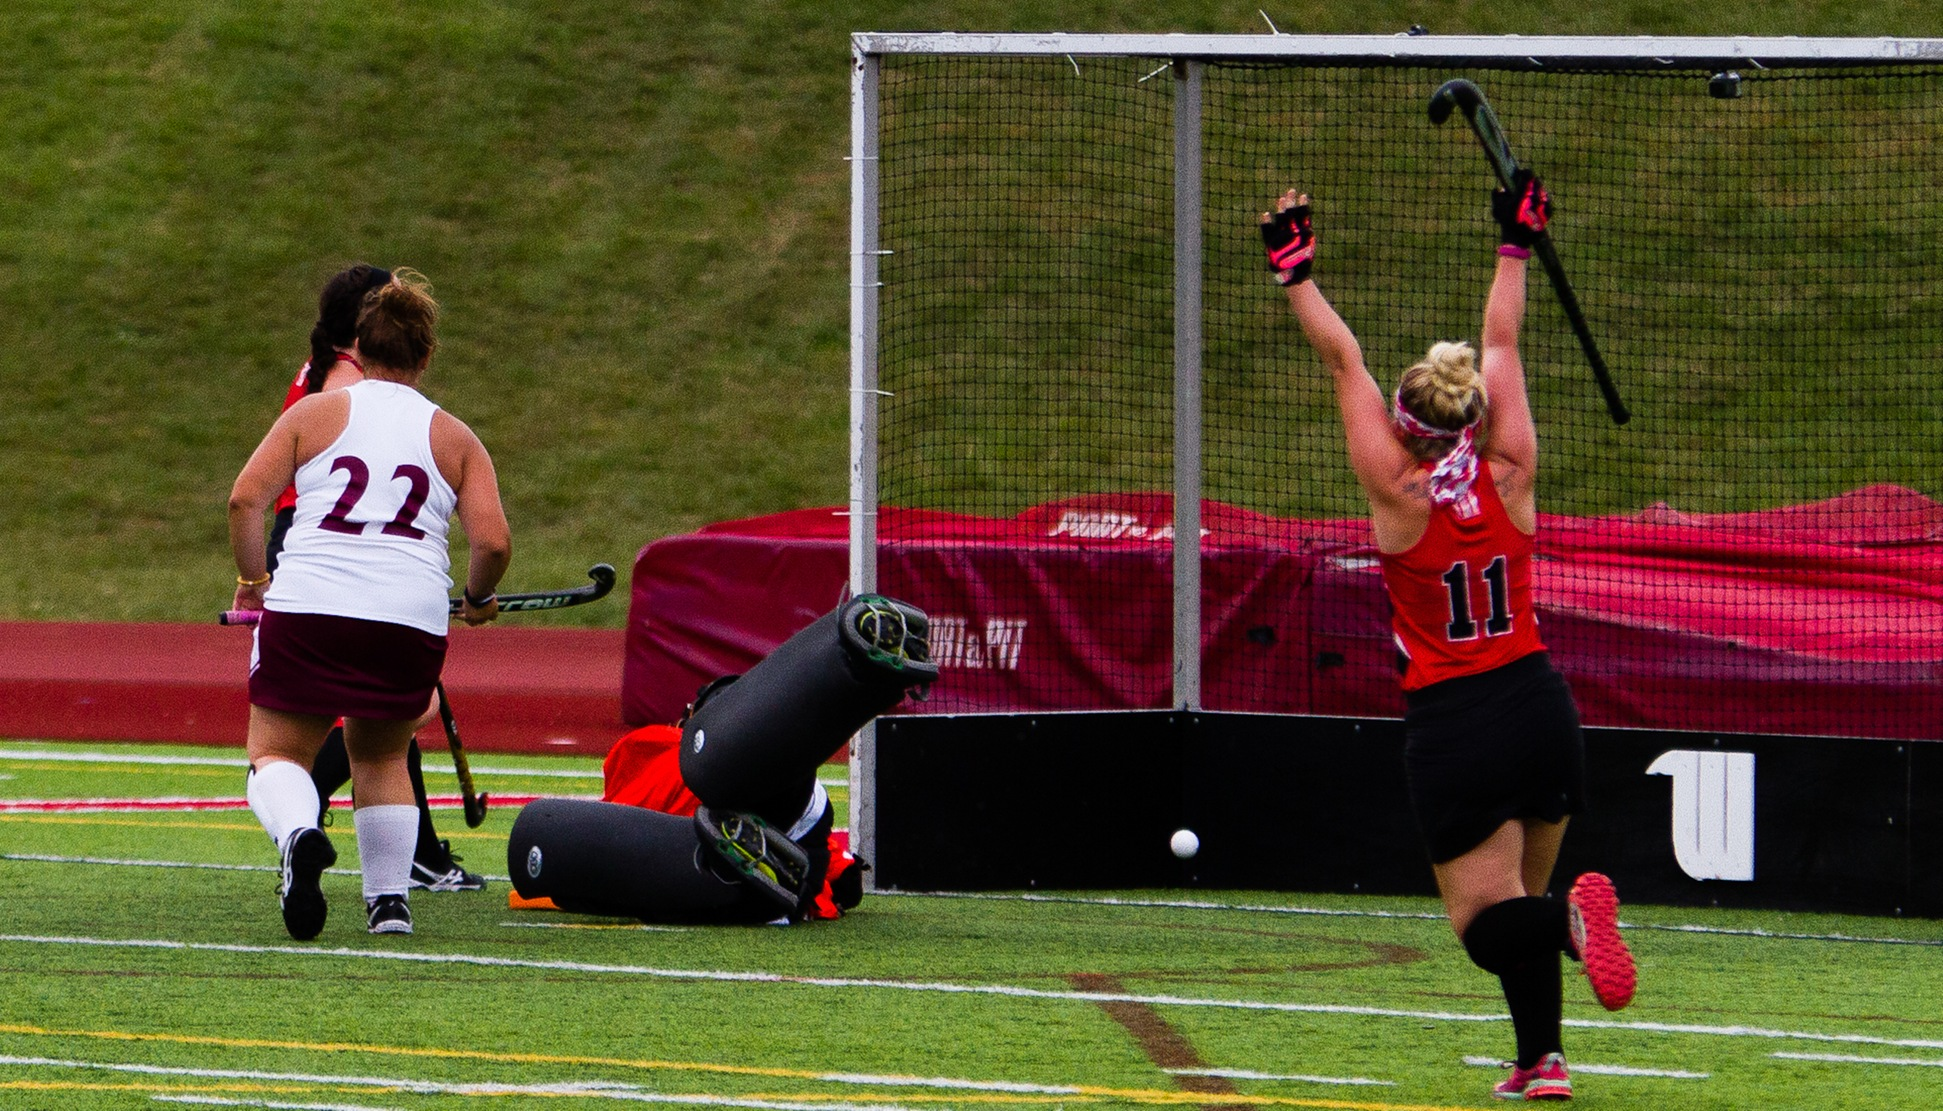 Junior Kayla Cull celebrates her game-winning goal in the Tigers' 3-2 win over Earlham - (Photo Courtesy of Trent Sprague '22)